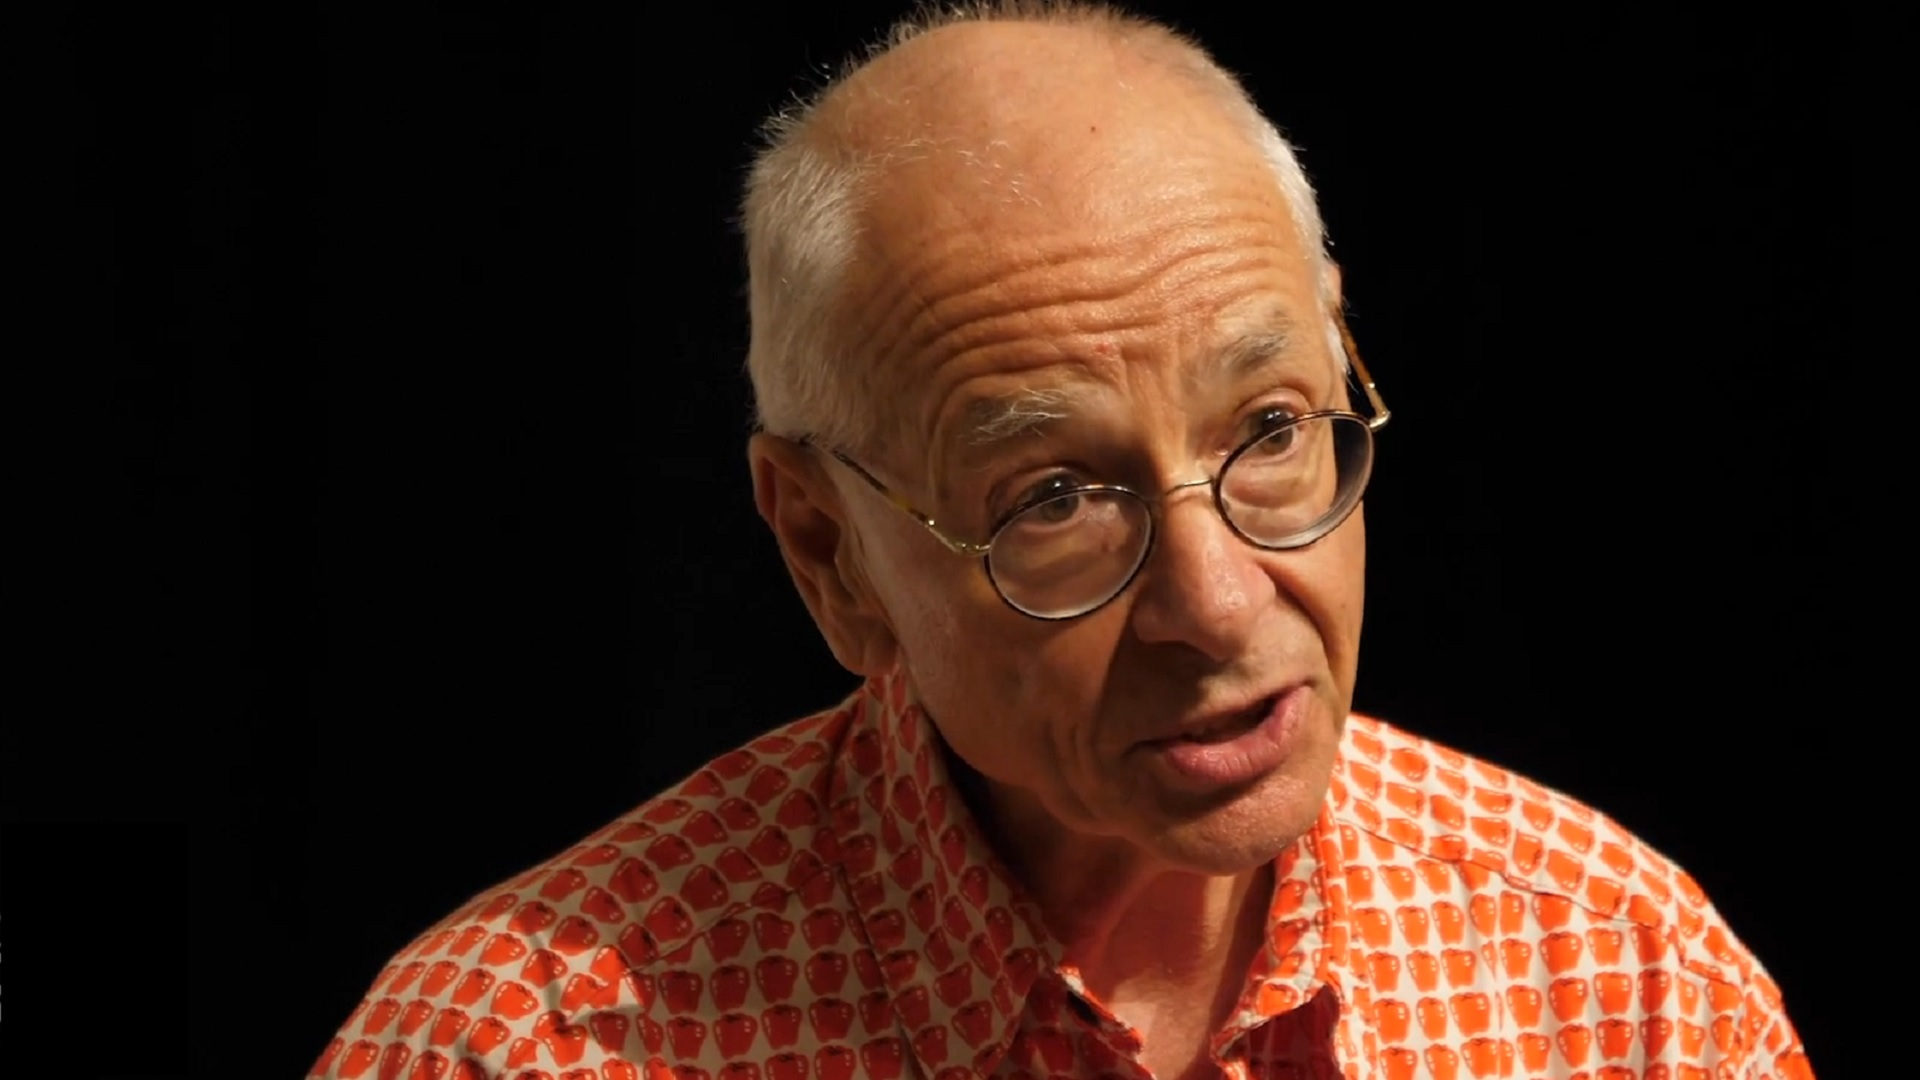 Dr Karl – Do you believe in climate change?